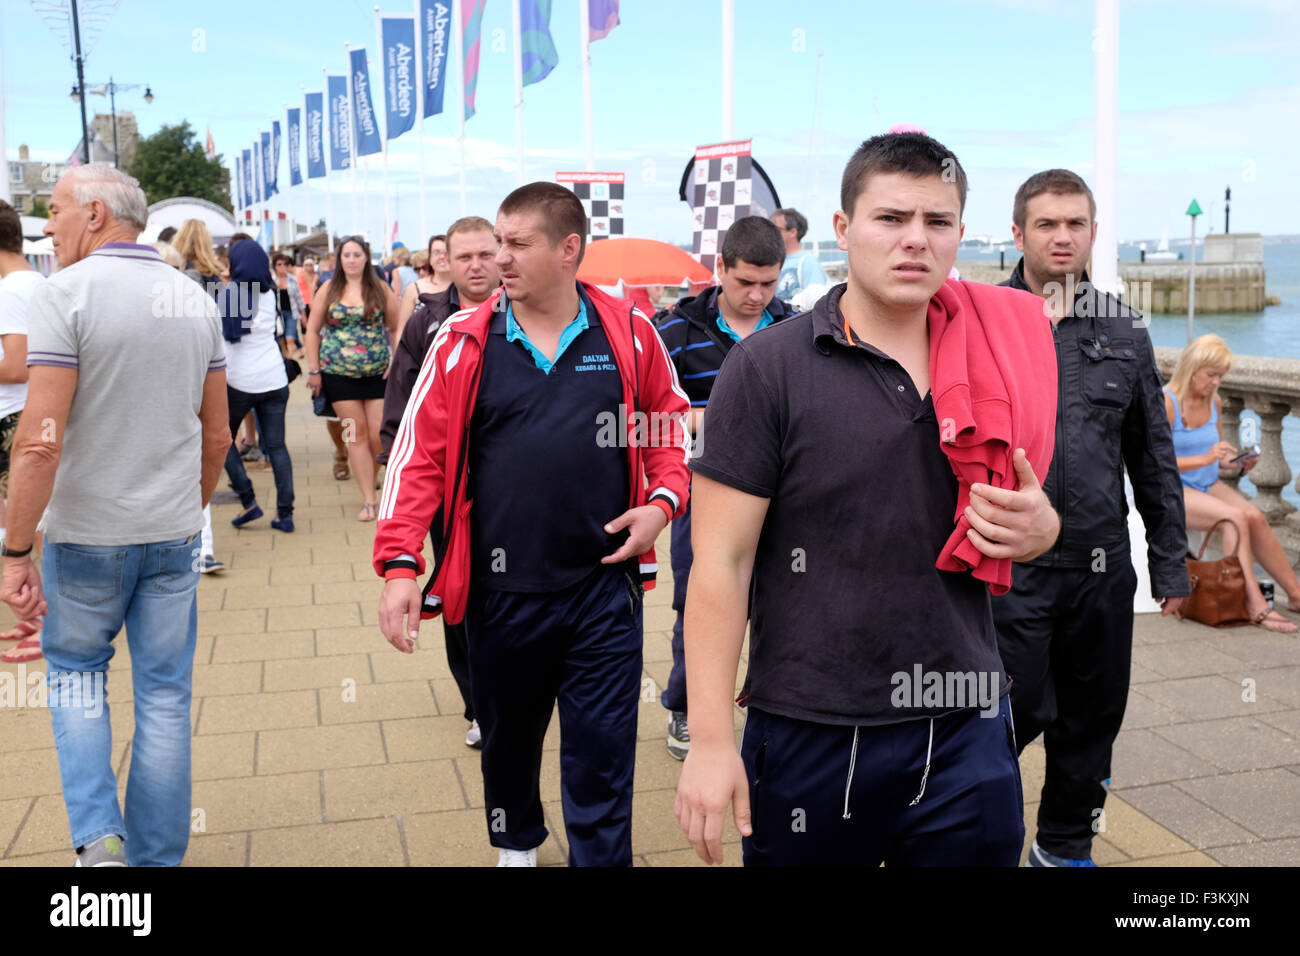 spectators Yacht Racing, Shore side entertainments, Bands, Yacht Club scenes, 2015, Cowes Week, Isle of Wight, England, - Stock Image